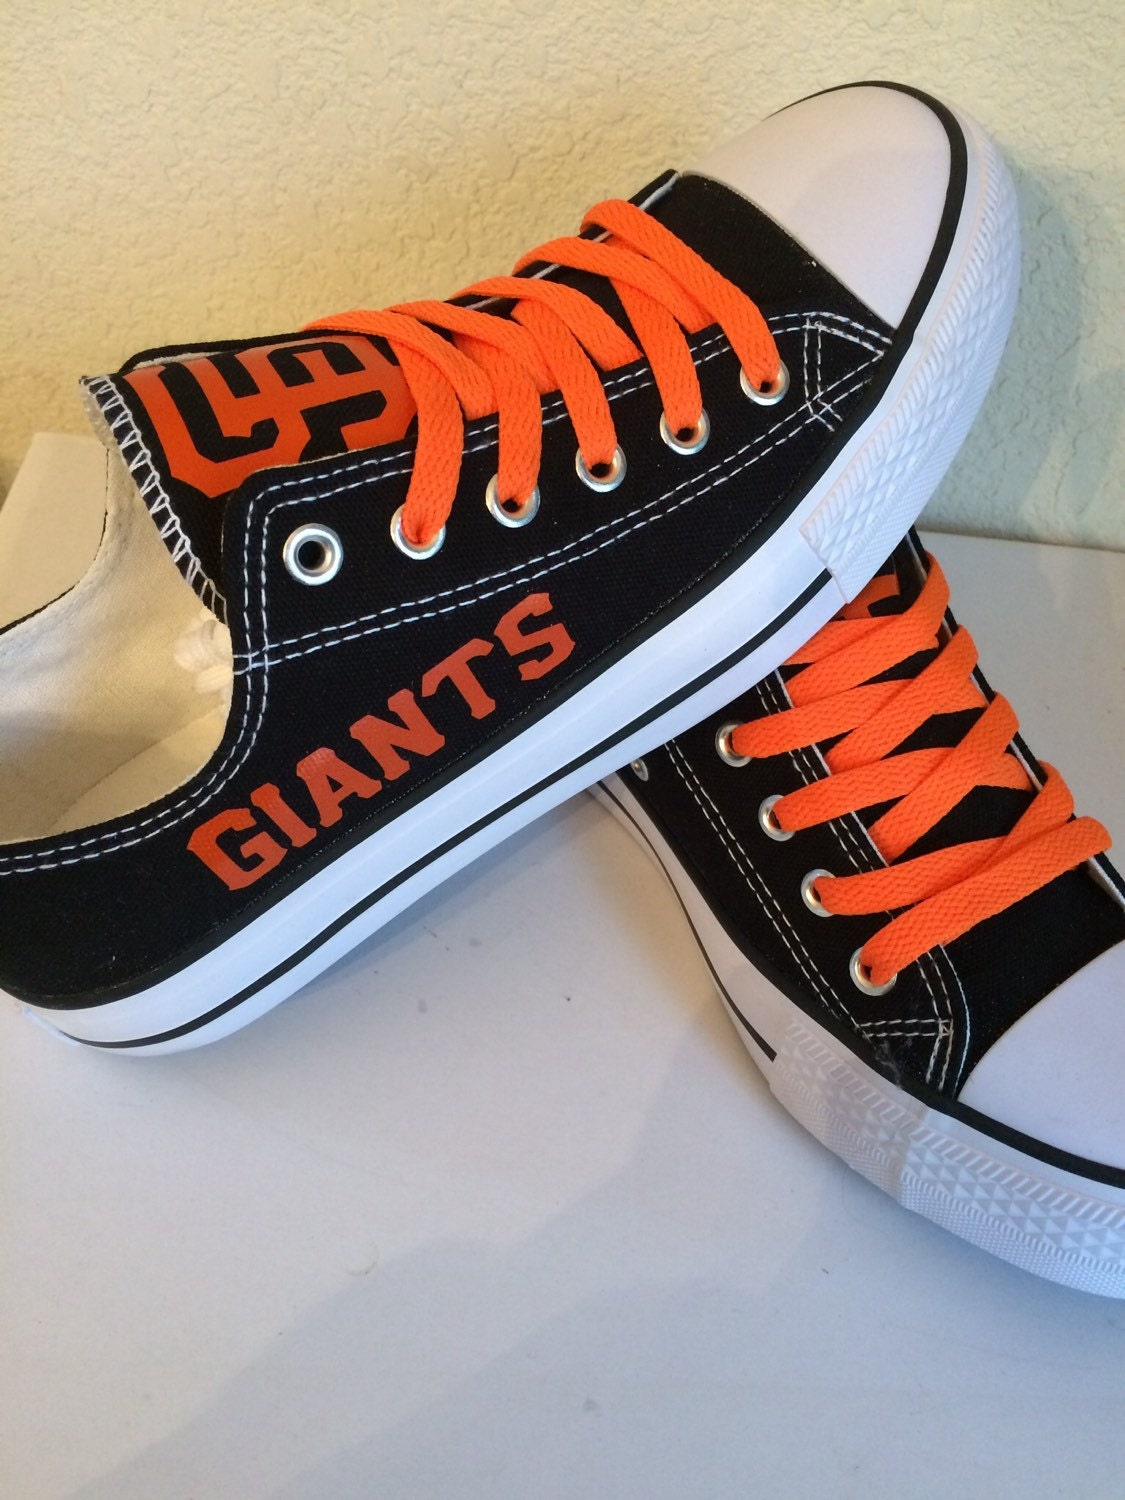 san francisco giants unisex tennis shoes by